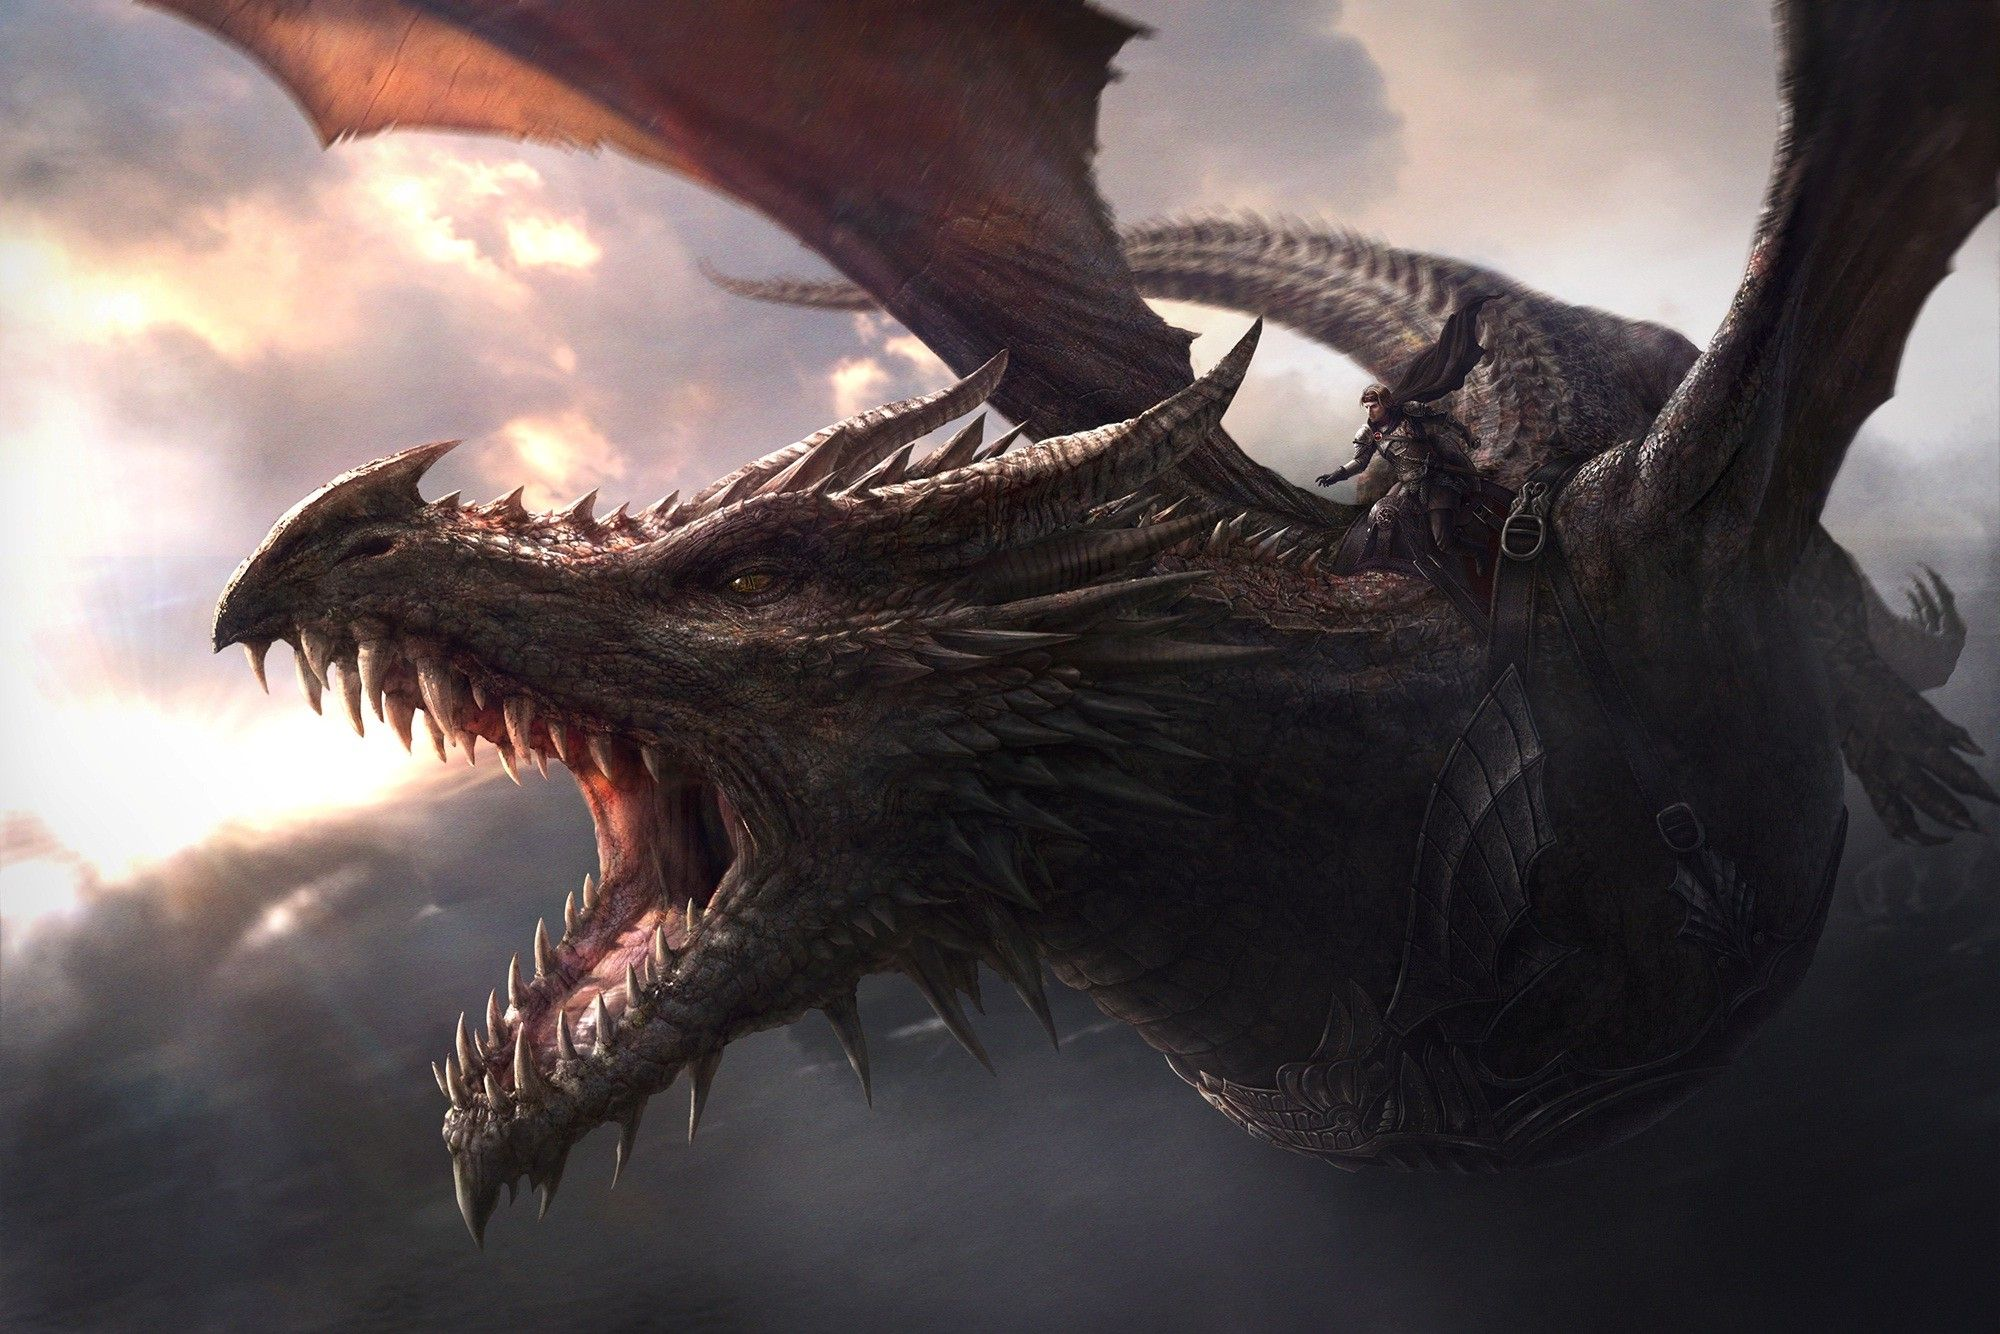 game of thrones backgrounds, game of thrones art wallpaper